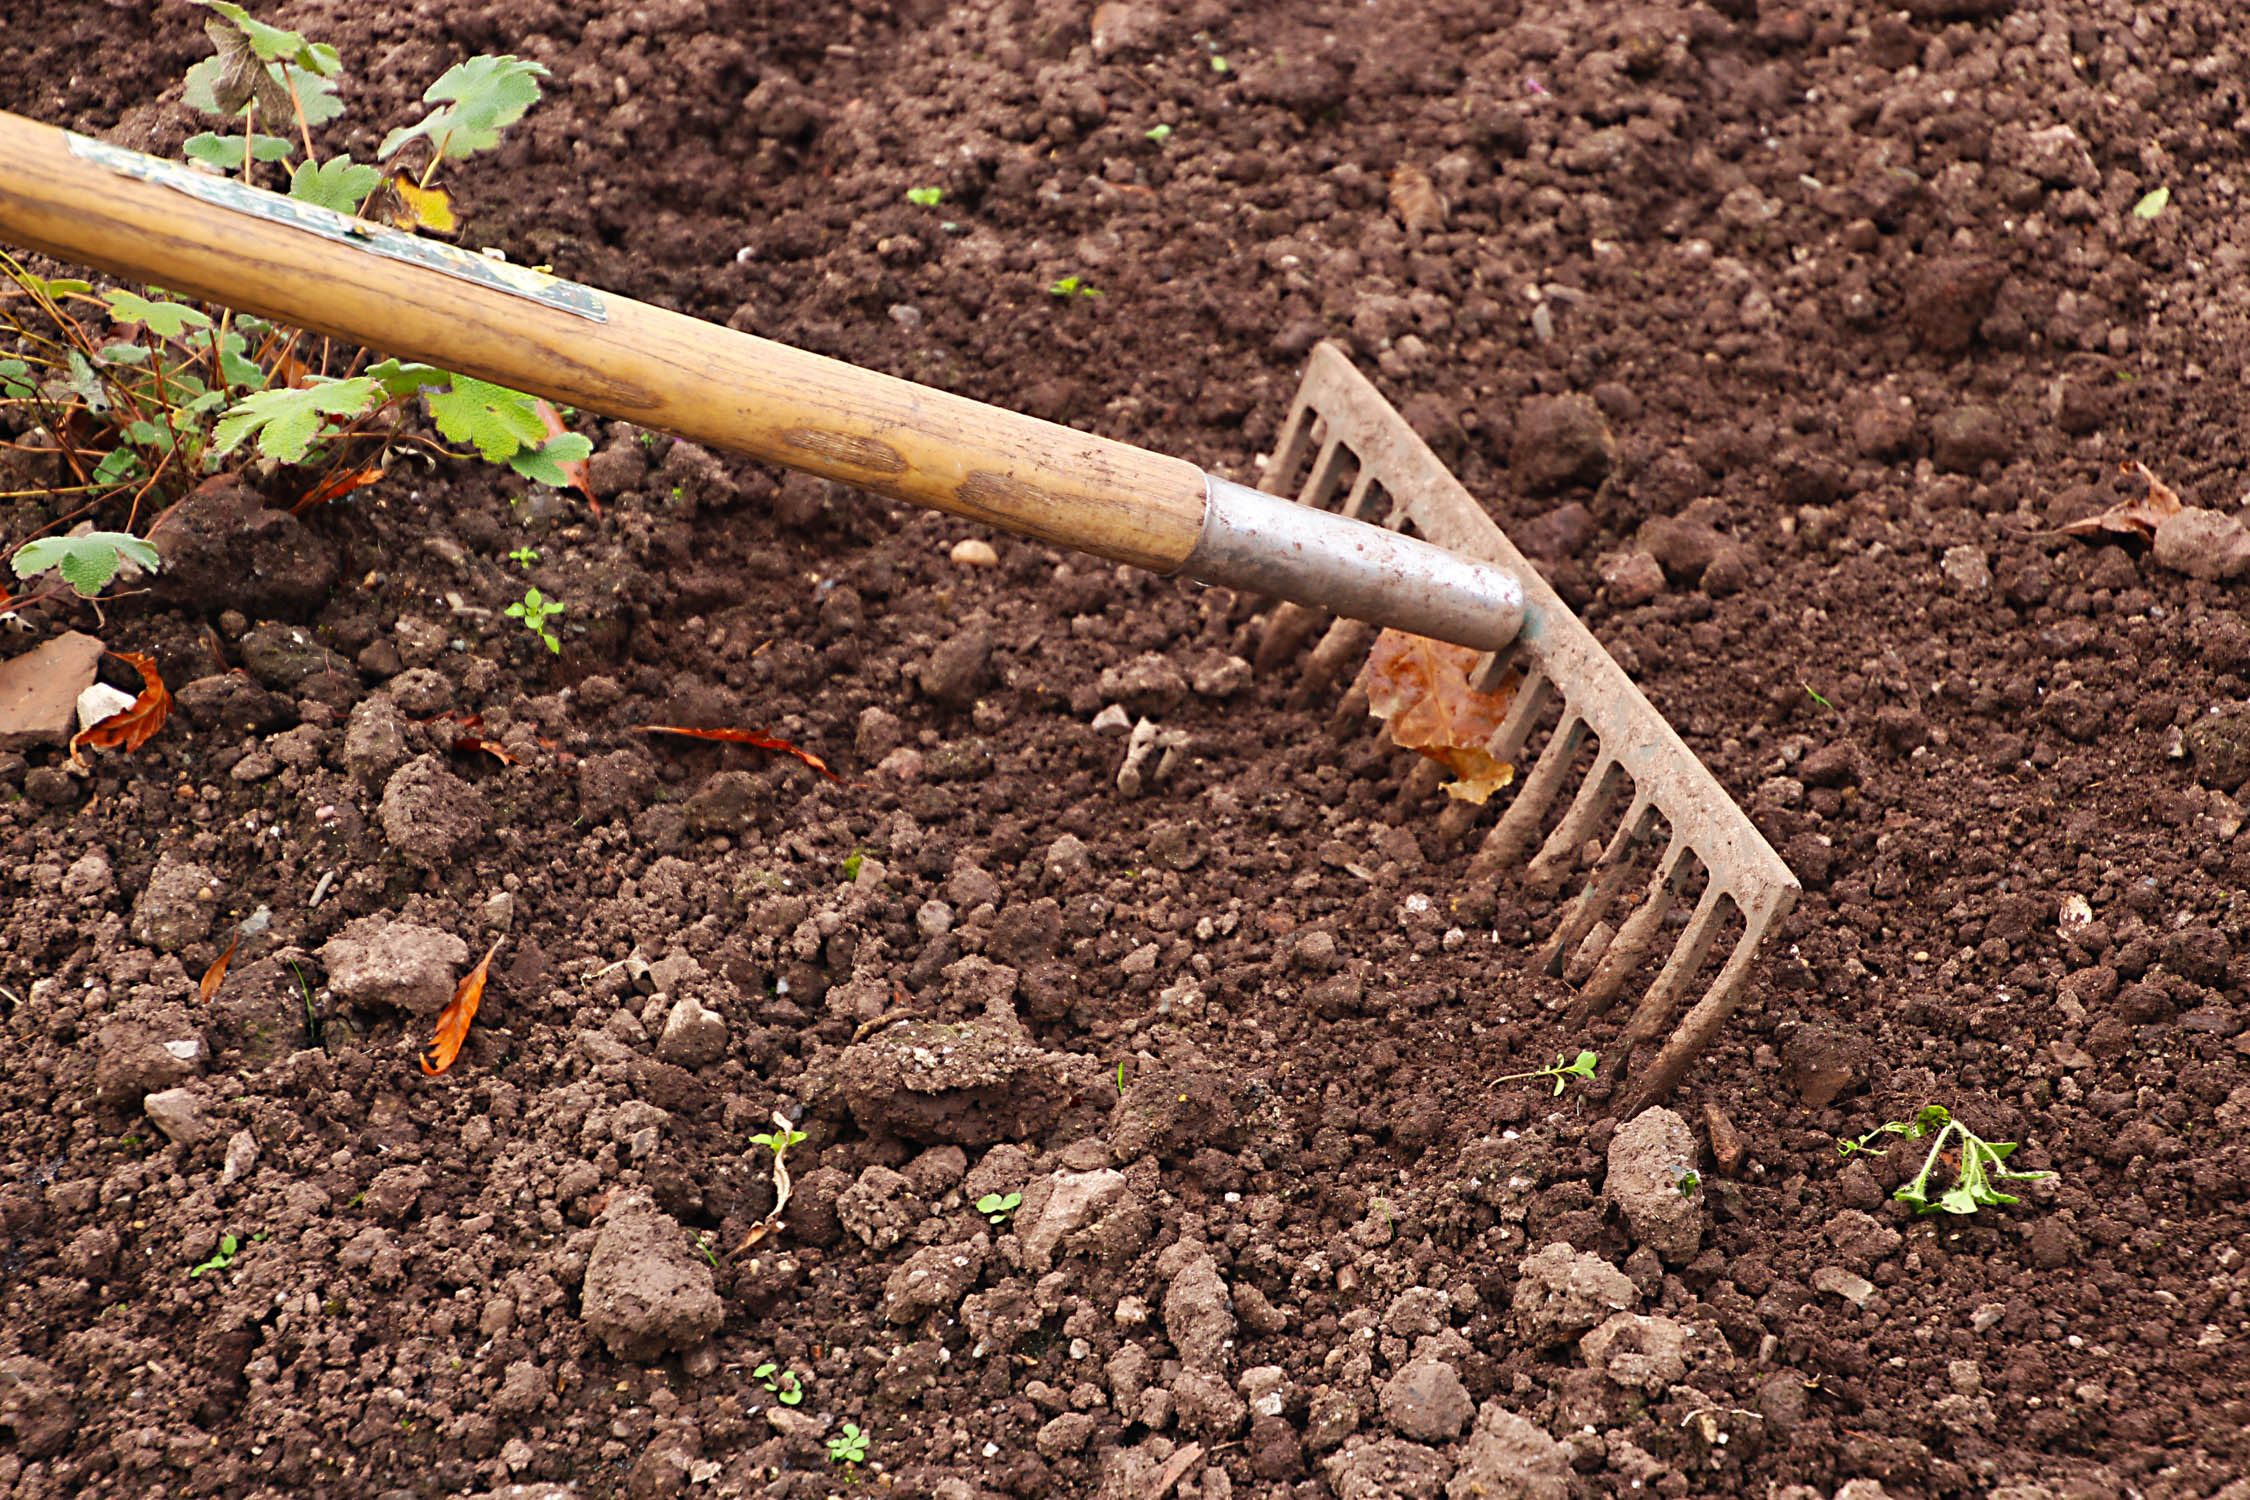 Soil compaction - Gardening - College of Agriculture and